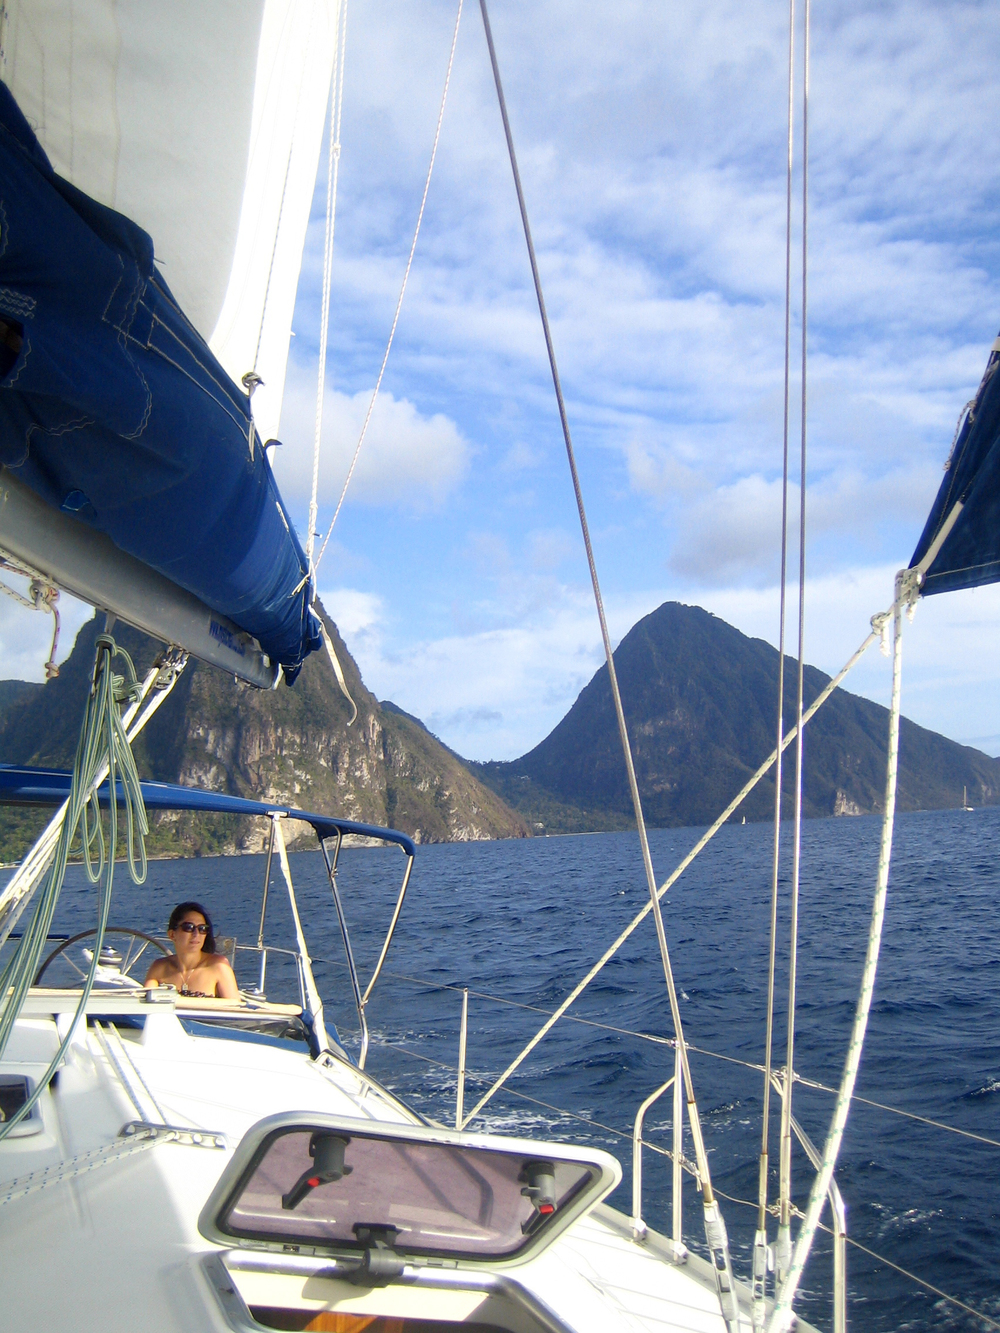 Pitons - St. Lucia, Lesser Antilles Islands, Carribean Sea  ( Her favorite   Destination   so far ...  She loves the crystal blue water and warm sun.)